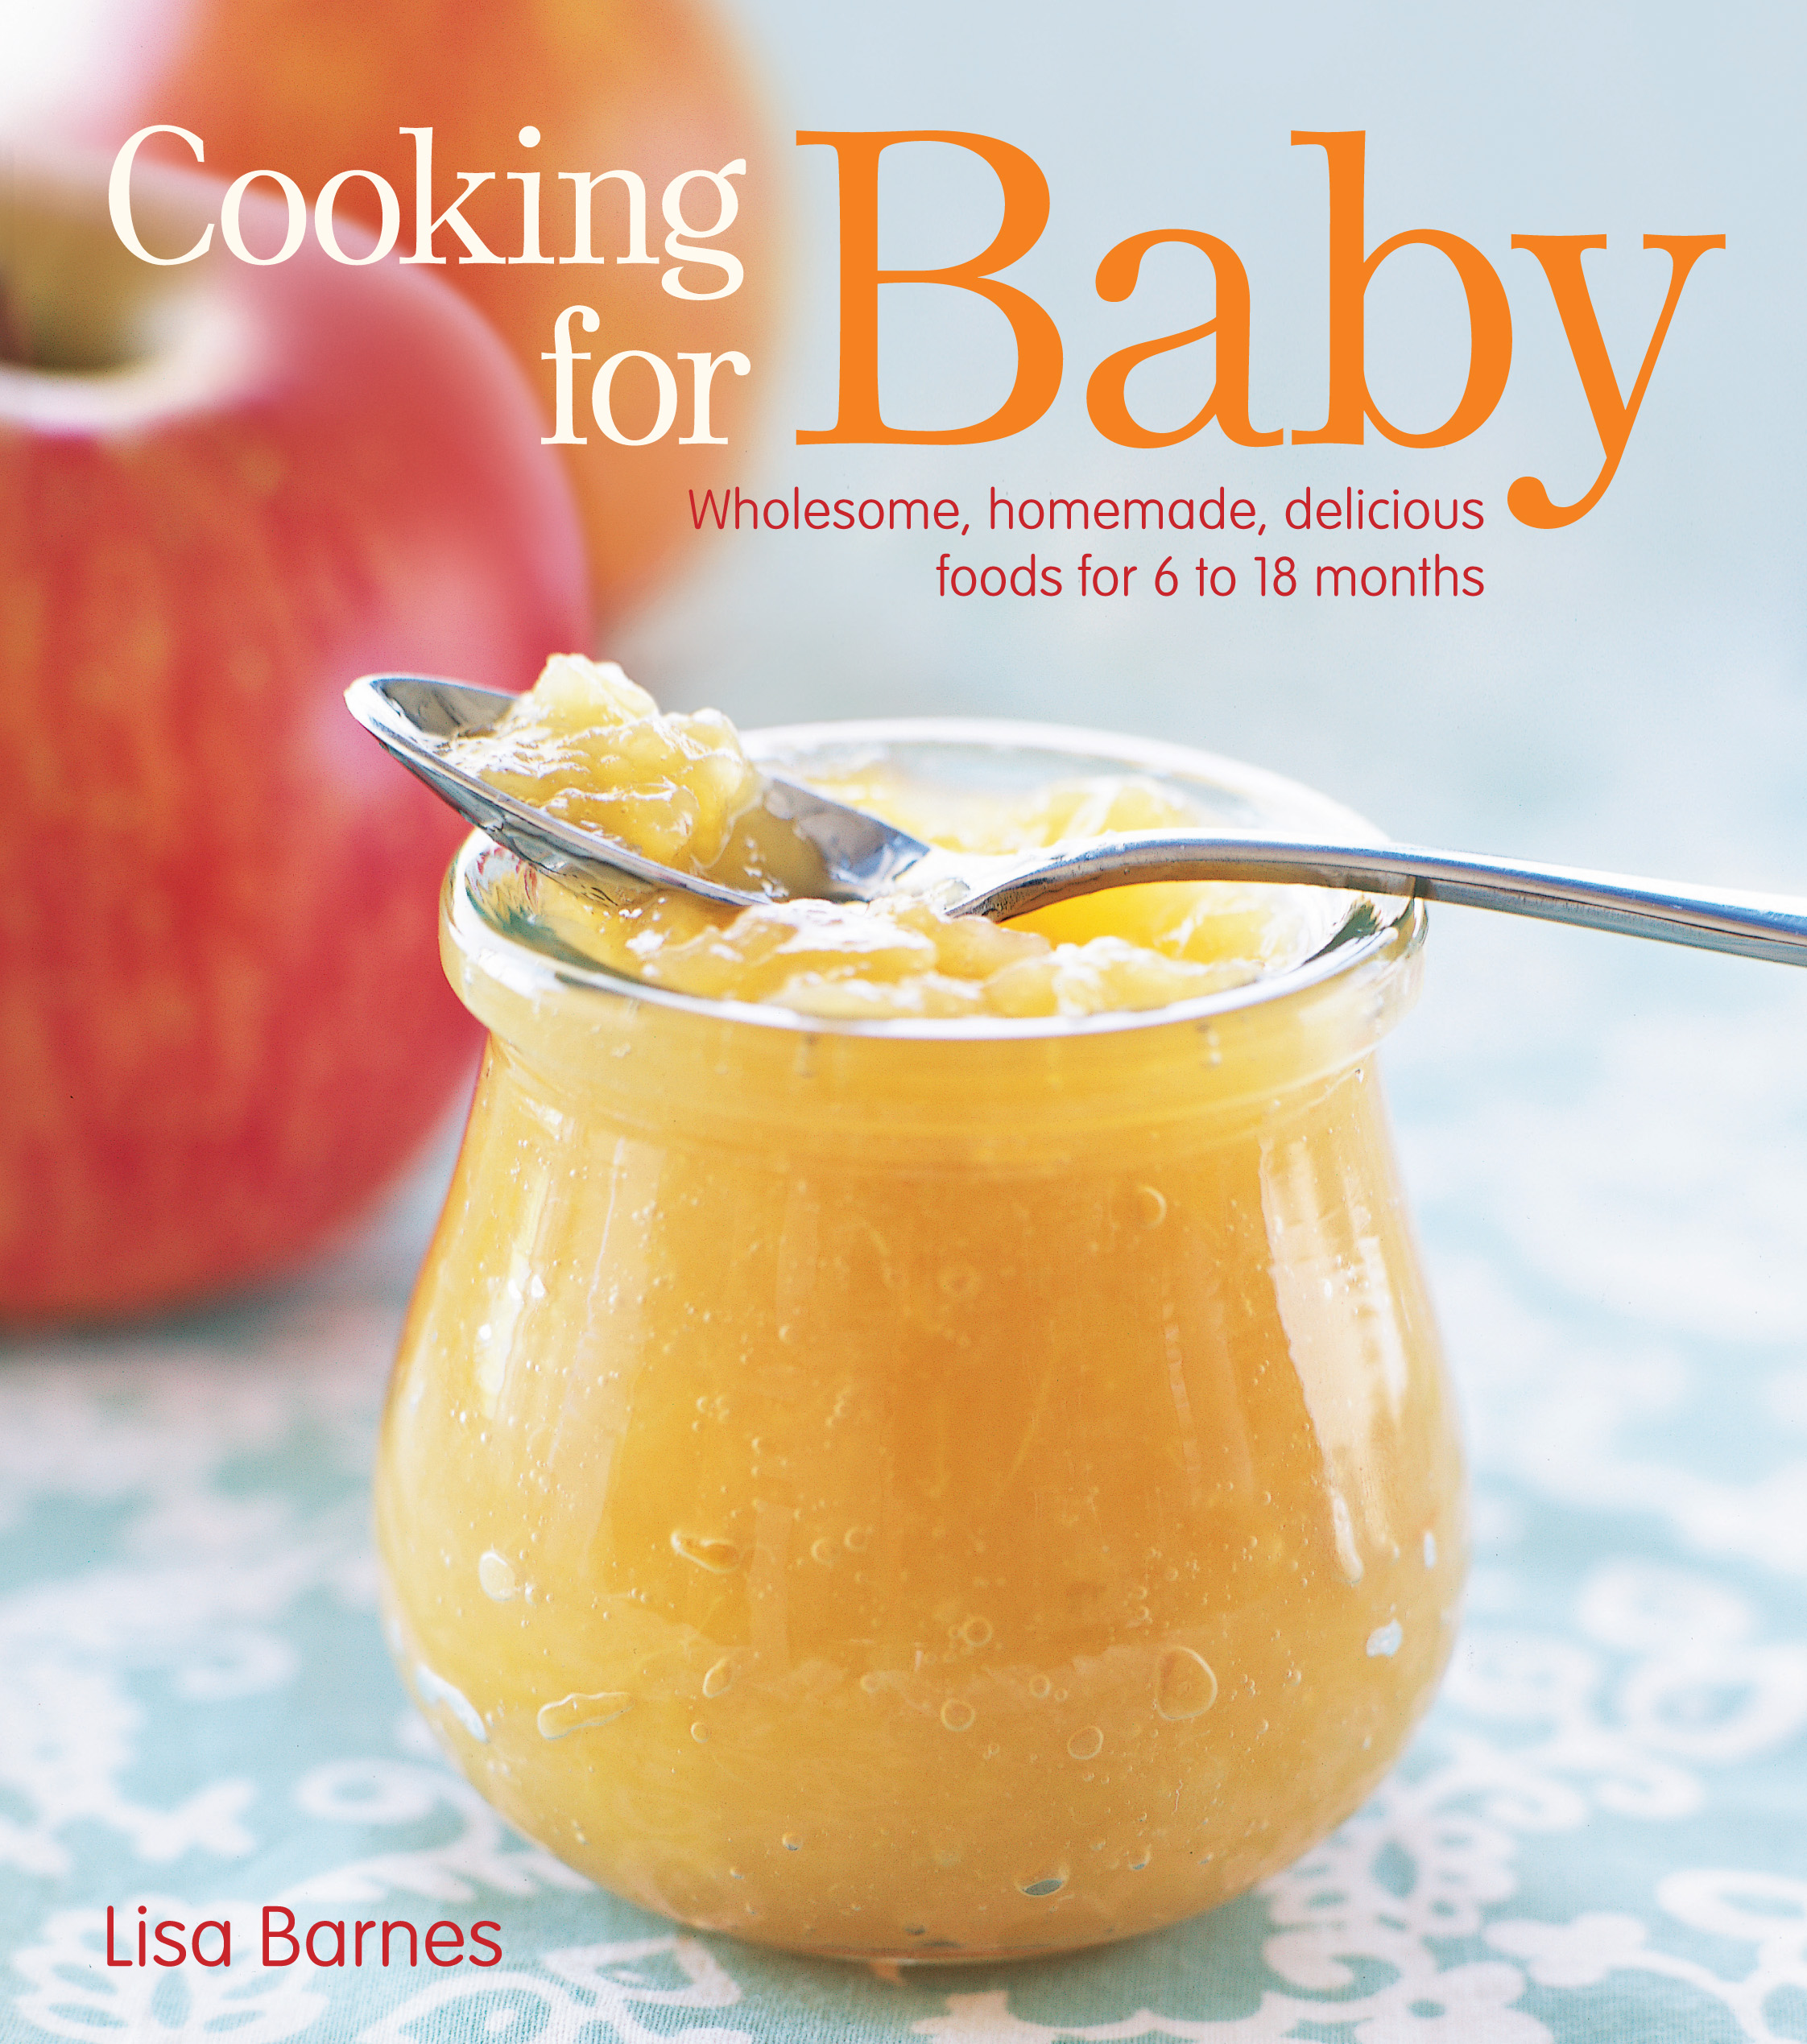 Cooking for baby book by lisa barnes official publisher page wholesome homemade delicious foods for 6 to 18 months cooking for baby forumfinder Gallery